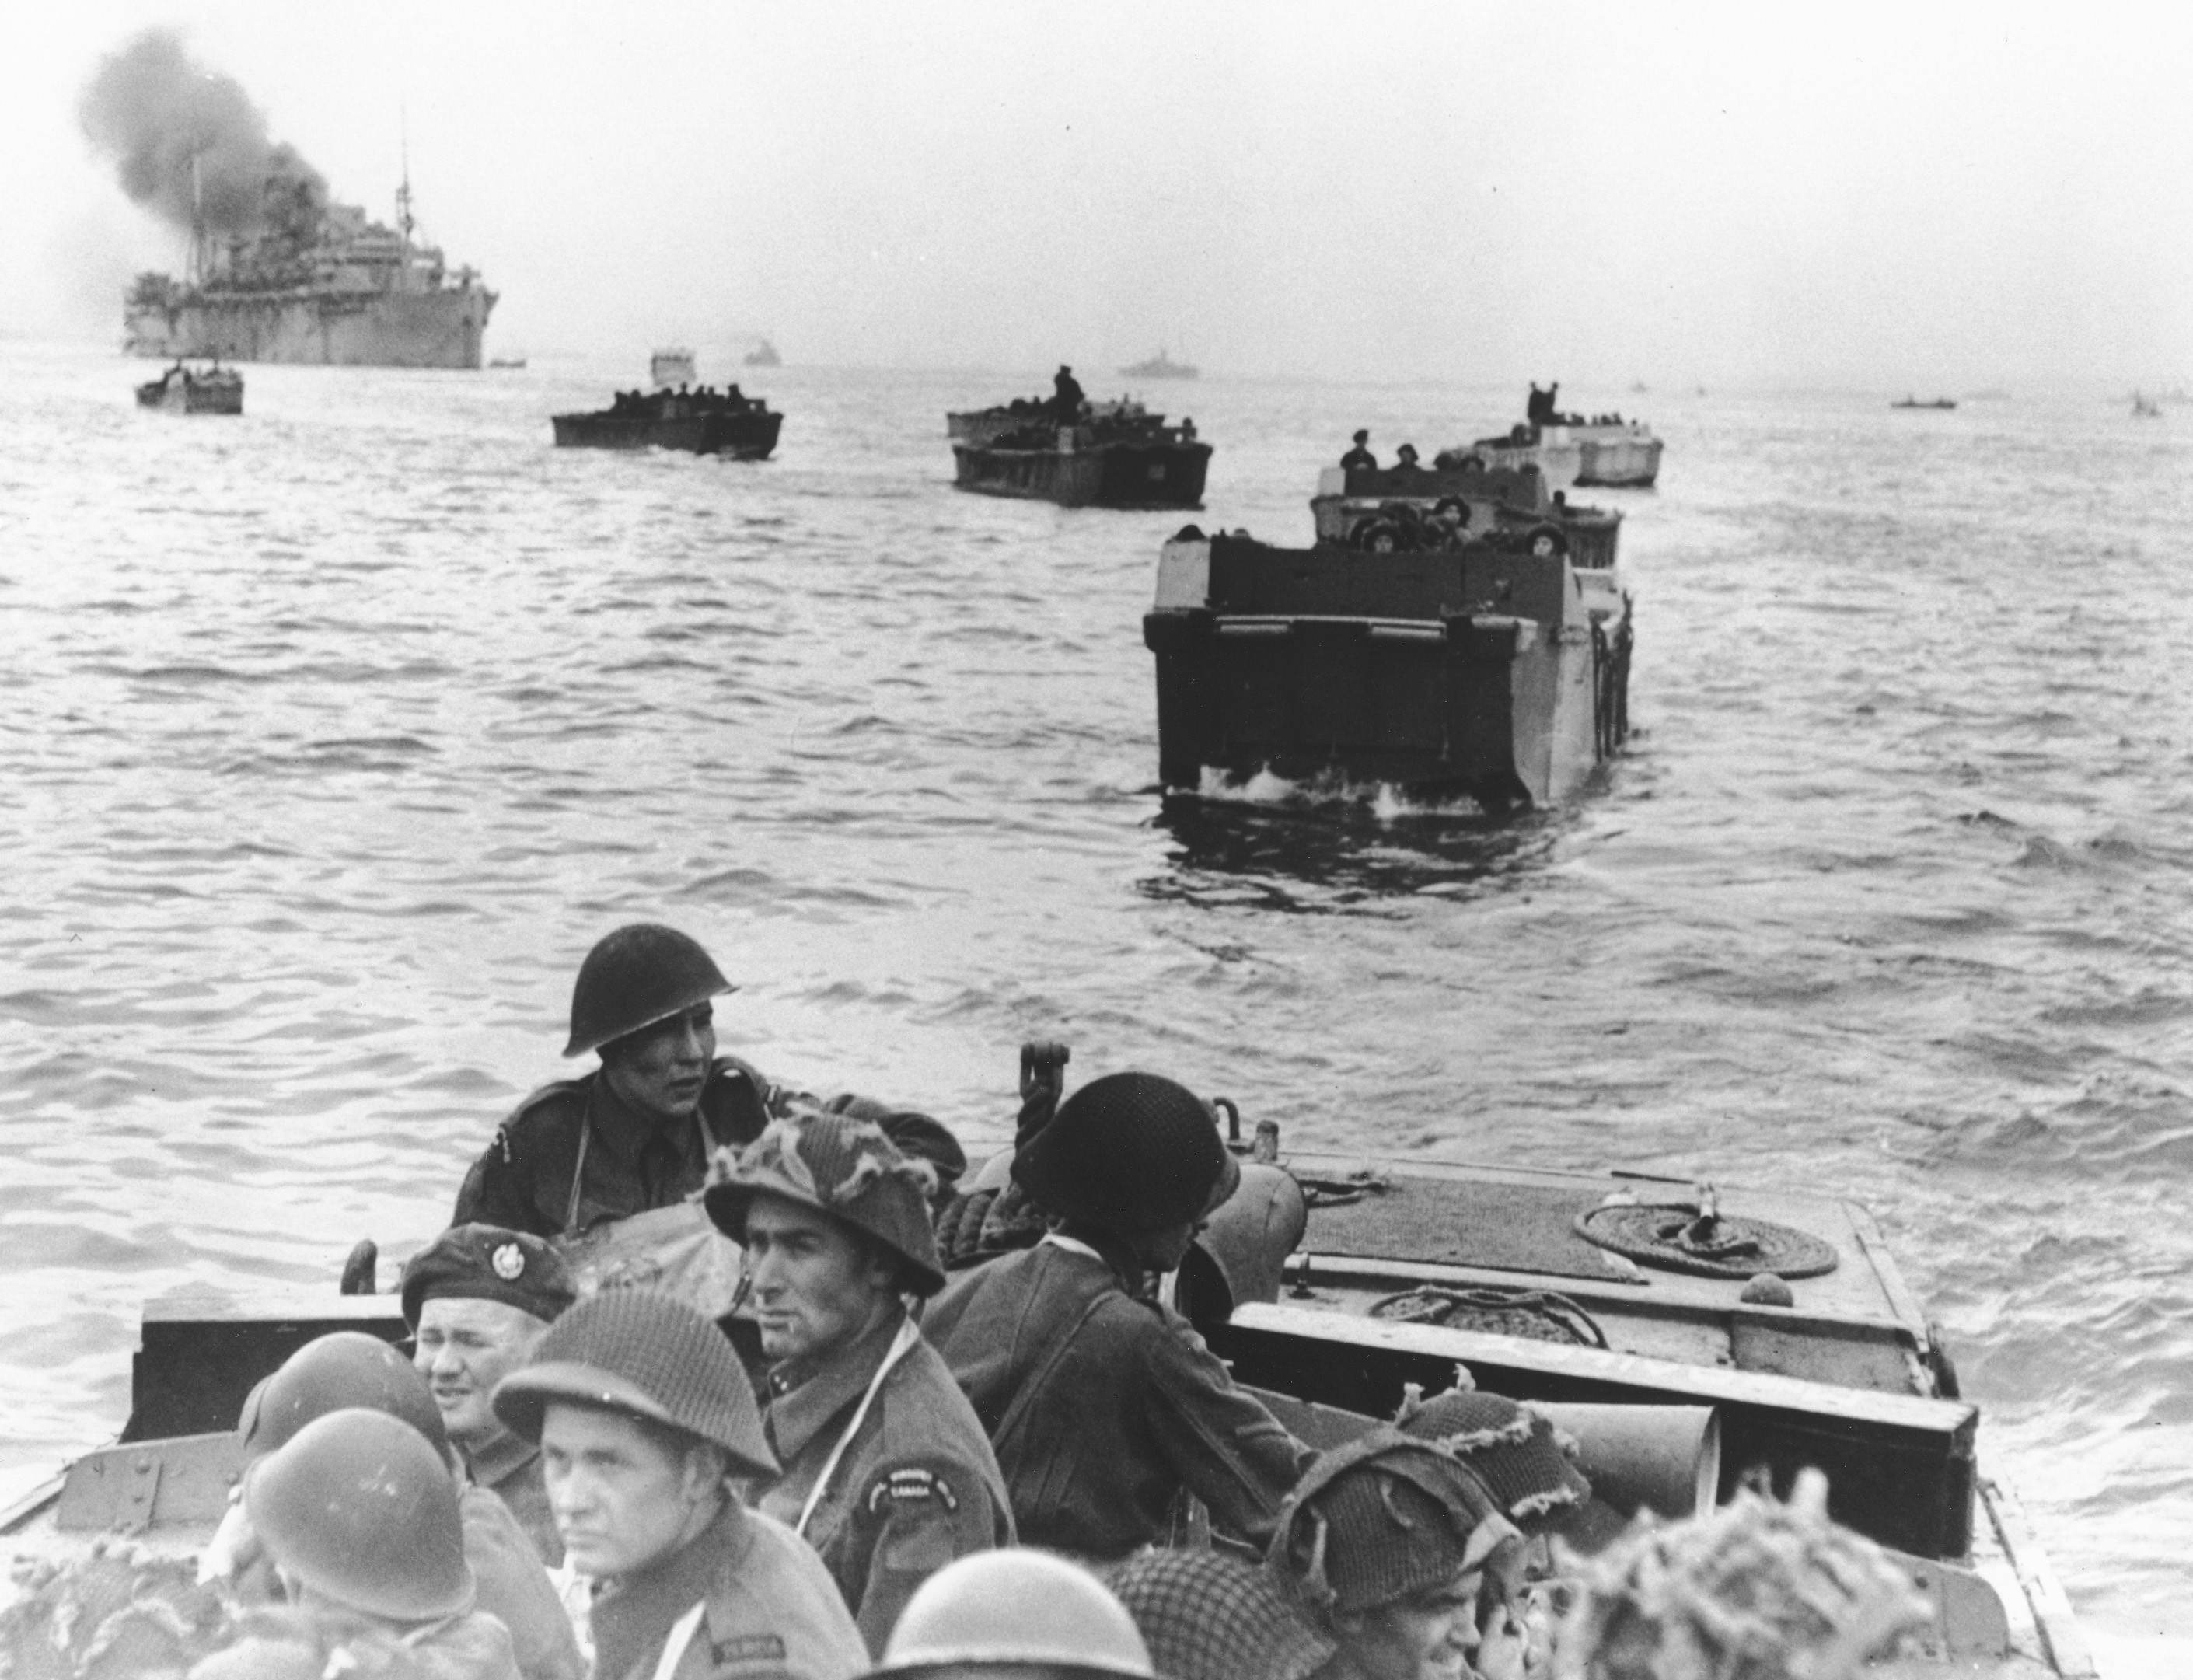 File:Canadian landings at Juno Beach.jpg